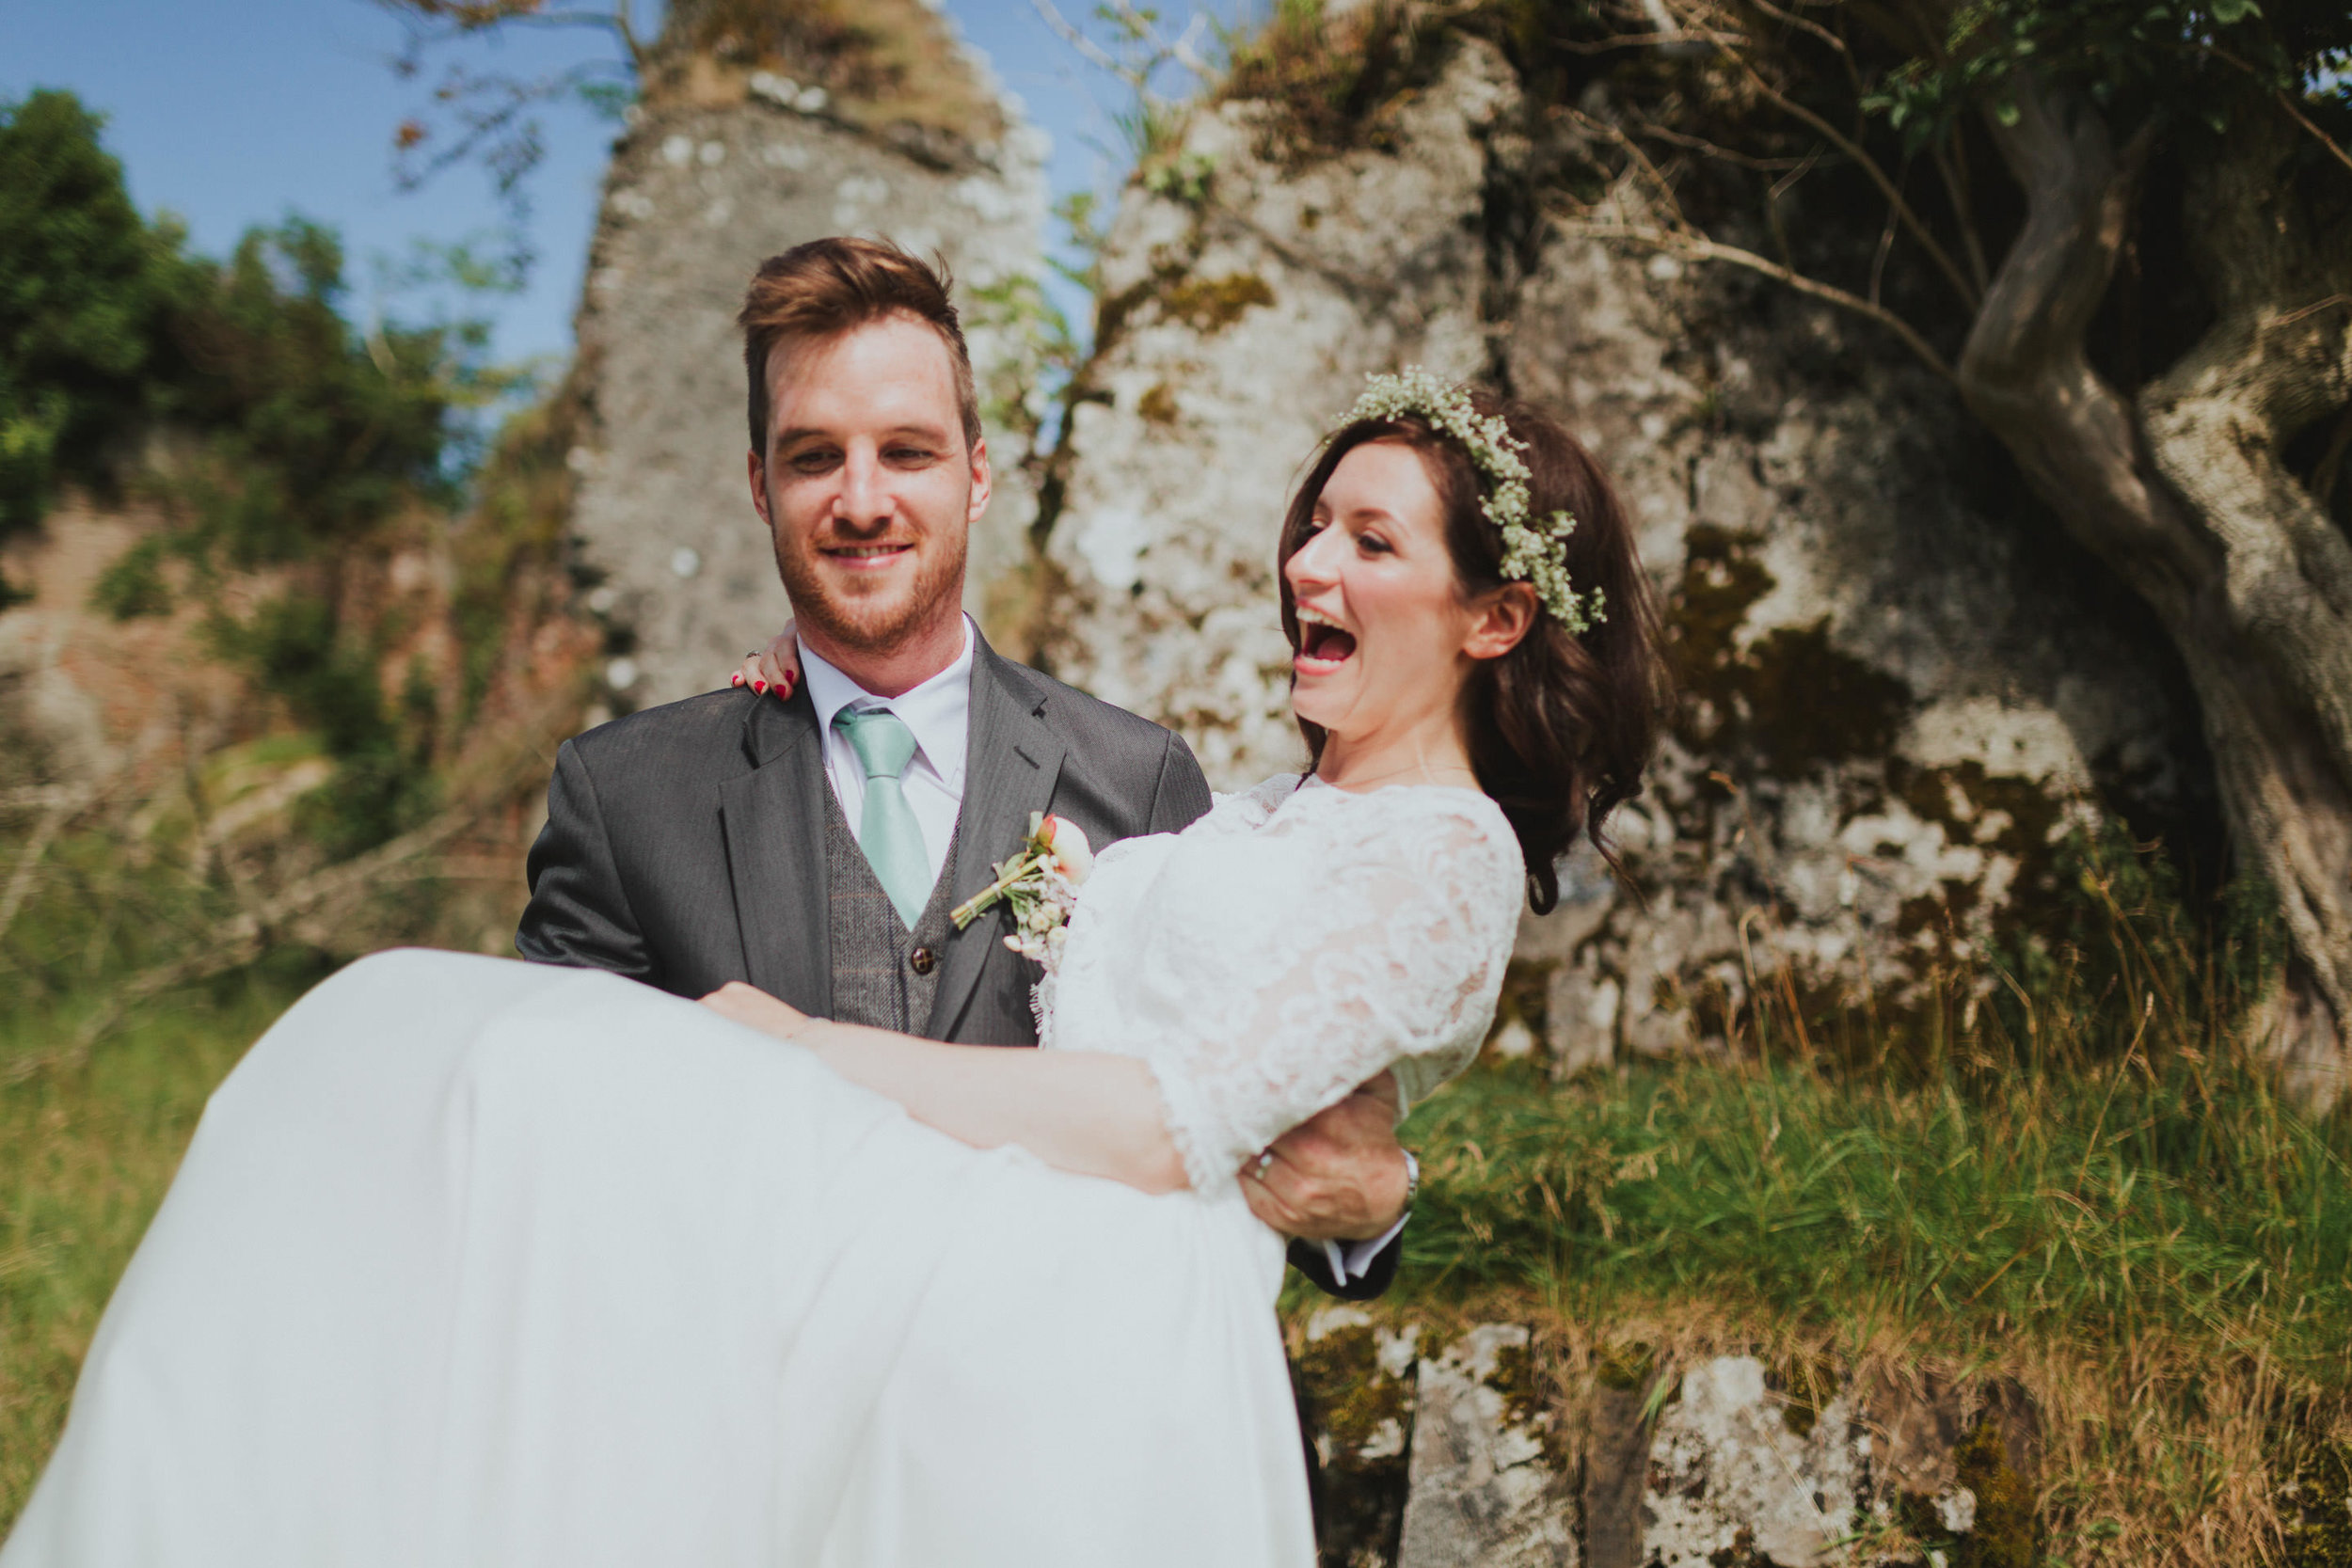 a+s_temple_house_sligo_wedding_livia_figueiredo_764.jpg